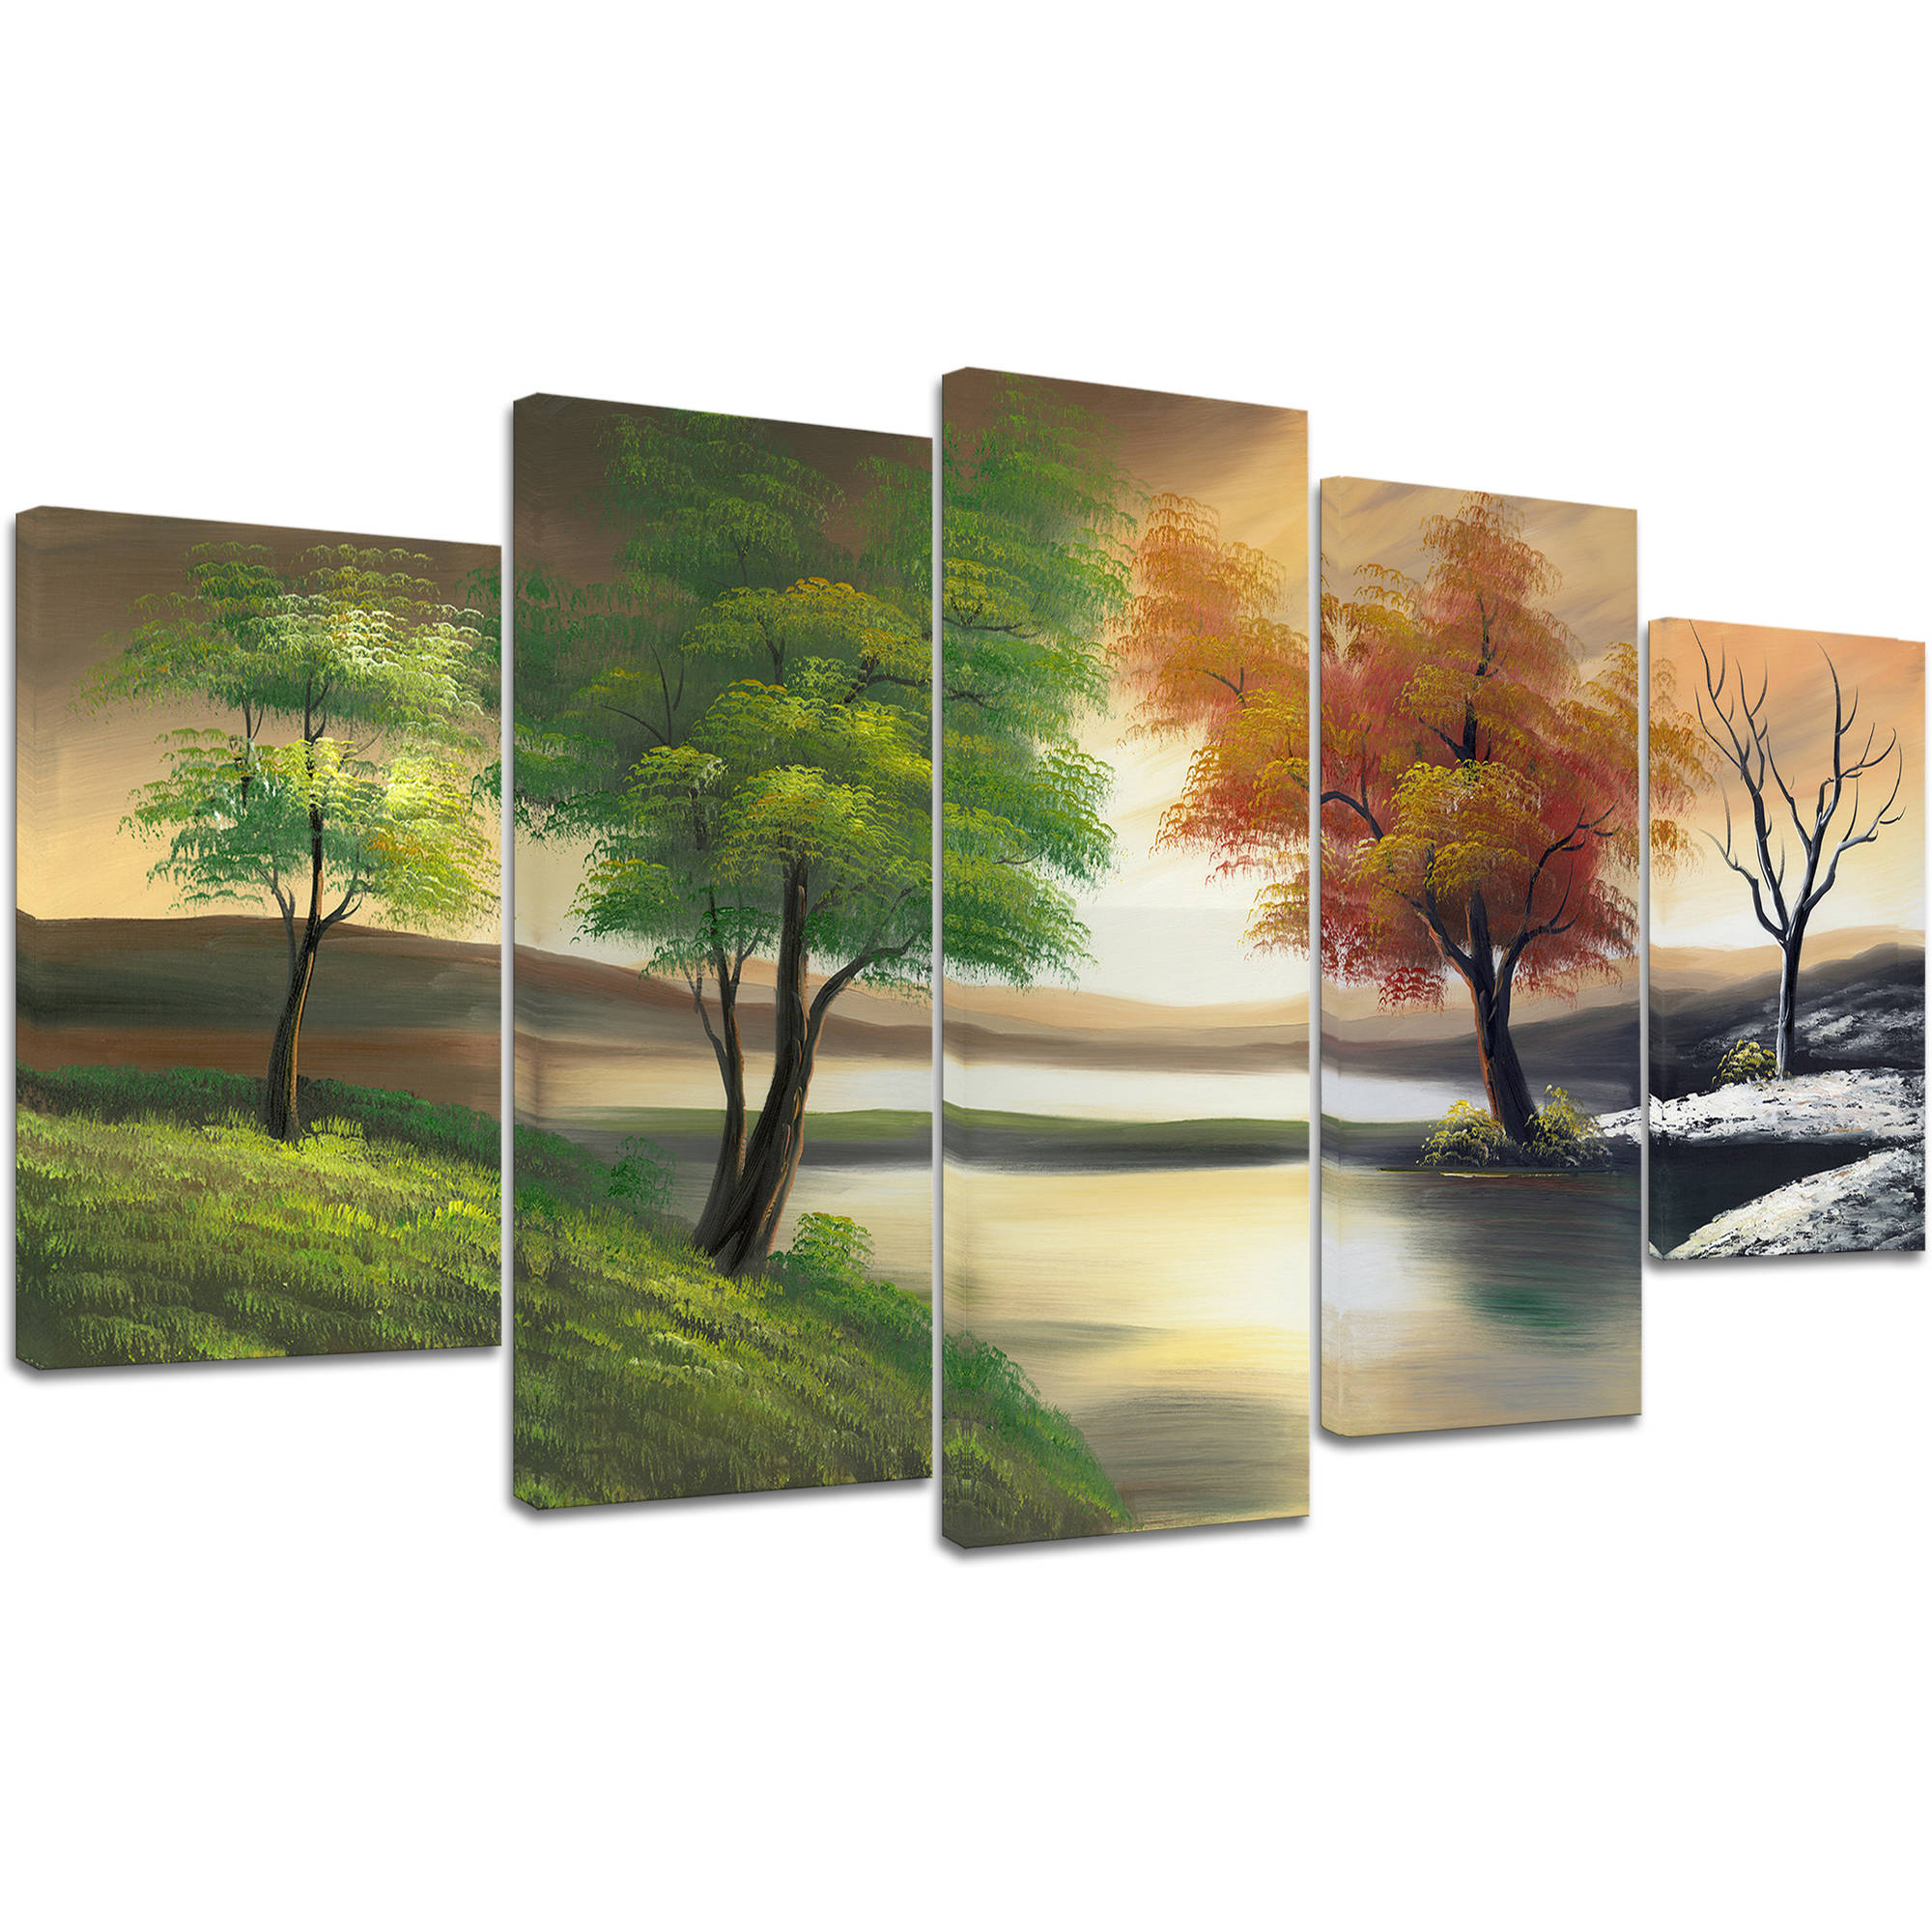 "Design Art Changing Seasons on the Lake Canvas Print, 5 Pieces, 60"" x 32"""